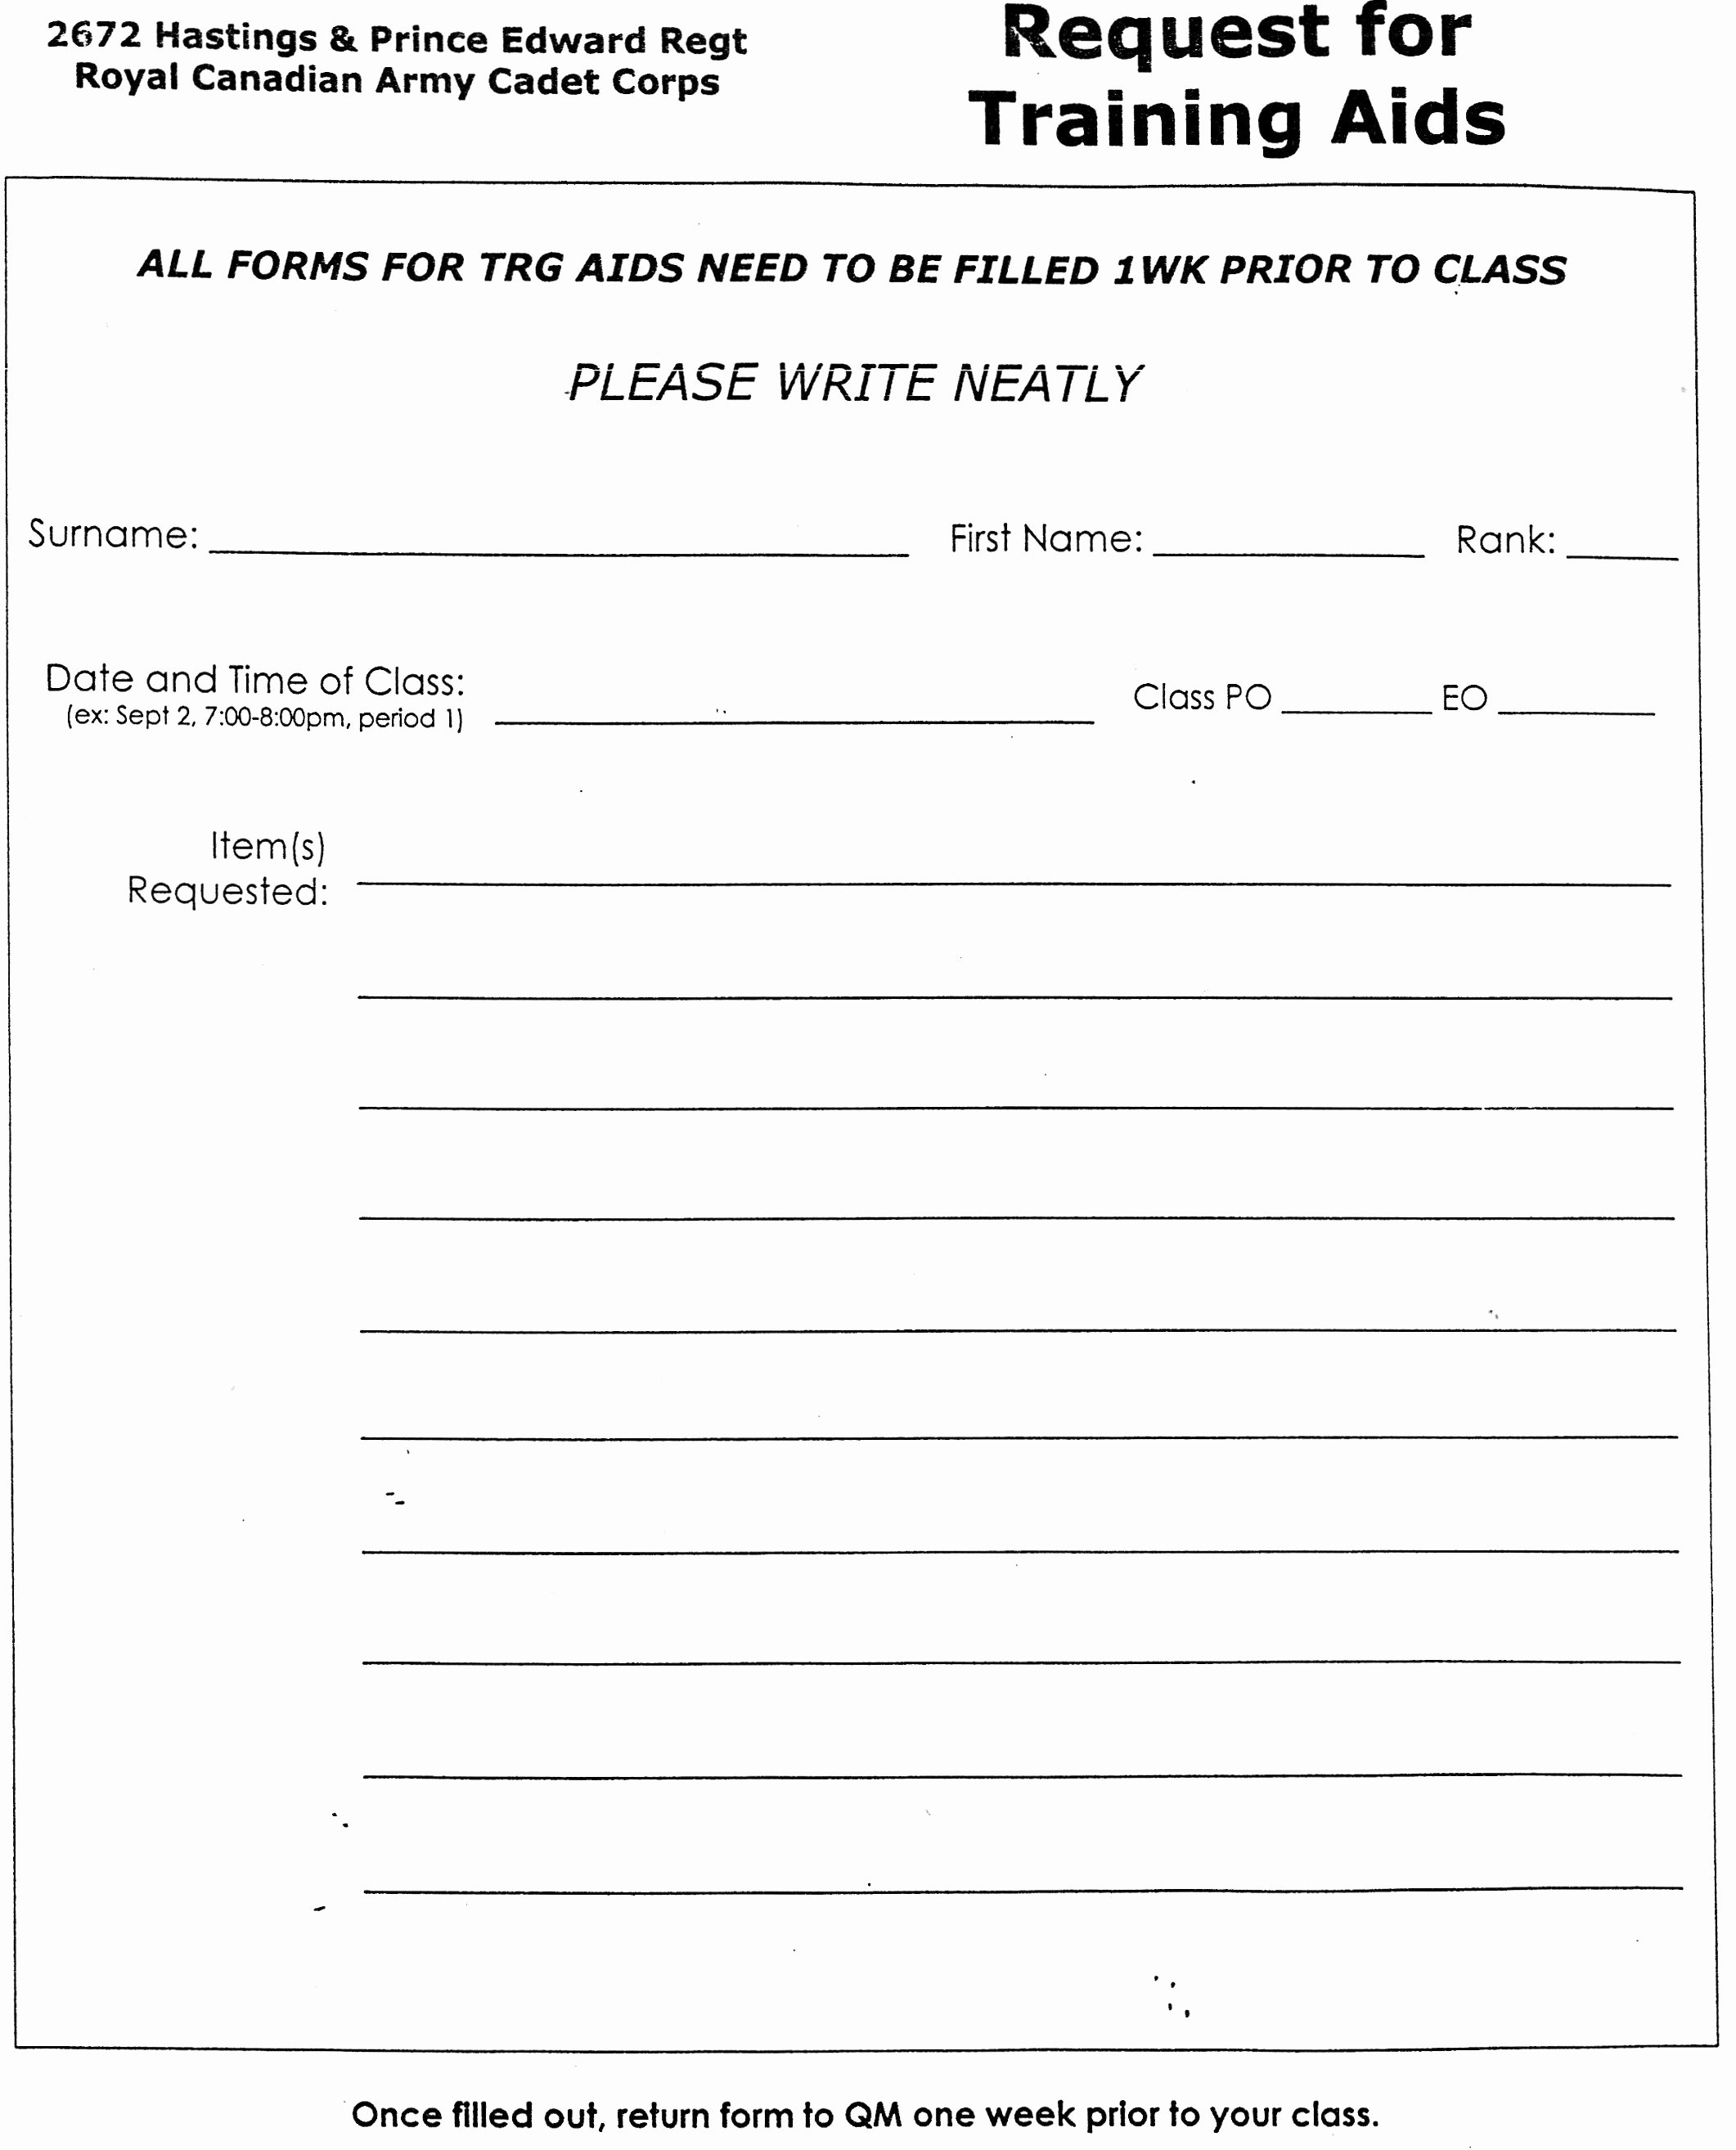 Training Request form Template Best Of Peterborough Army Cadets 2672 Paratus Hastings Prince